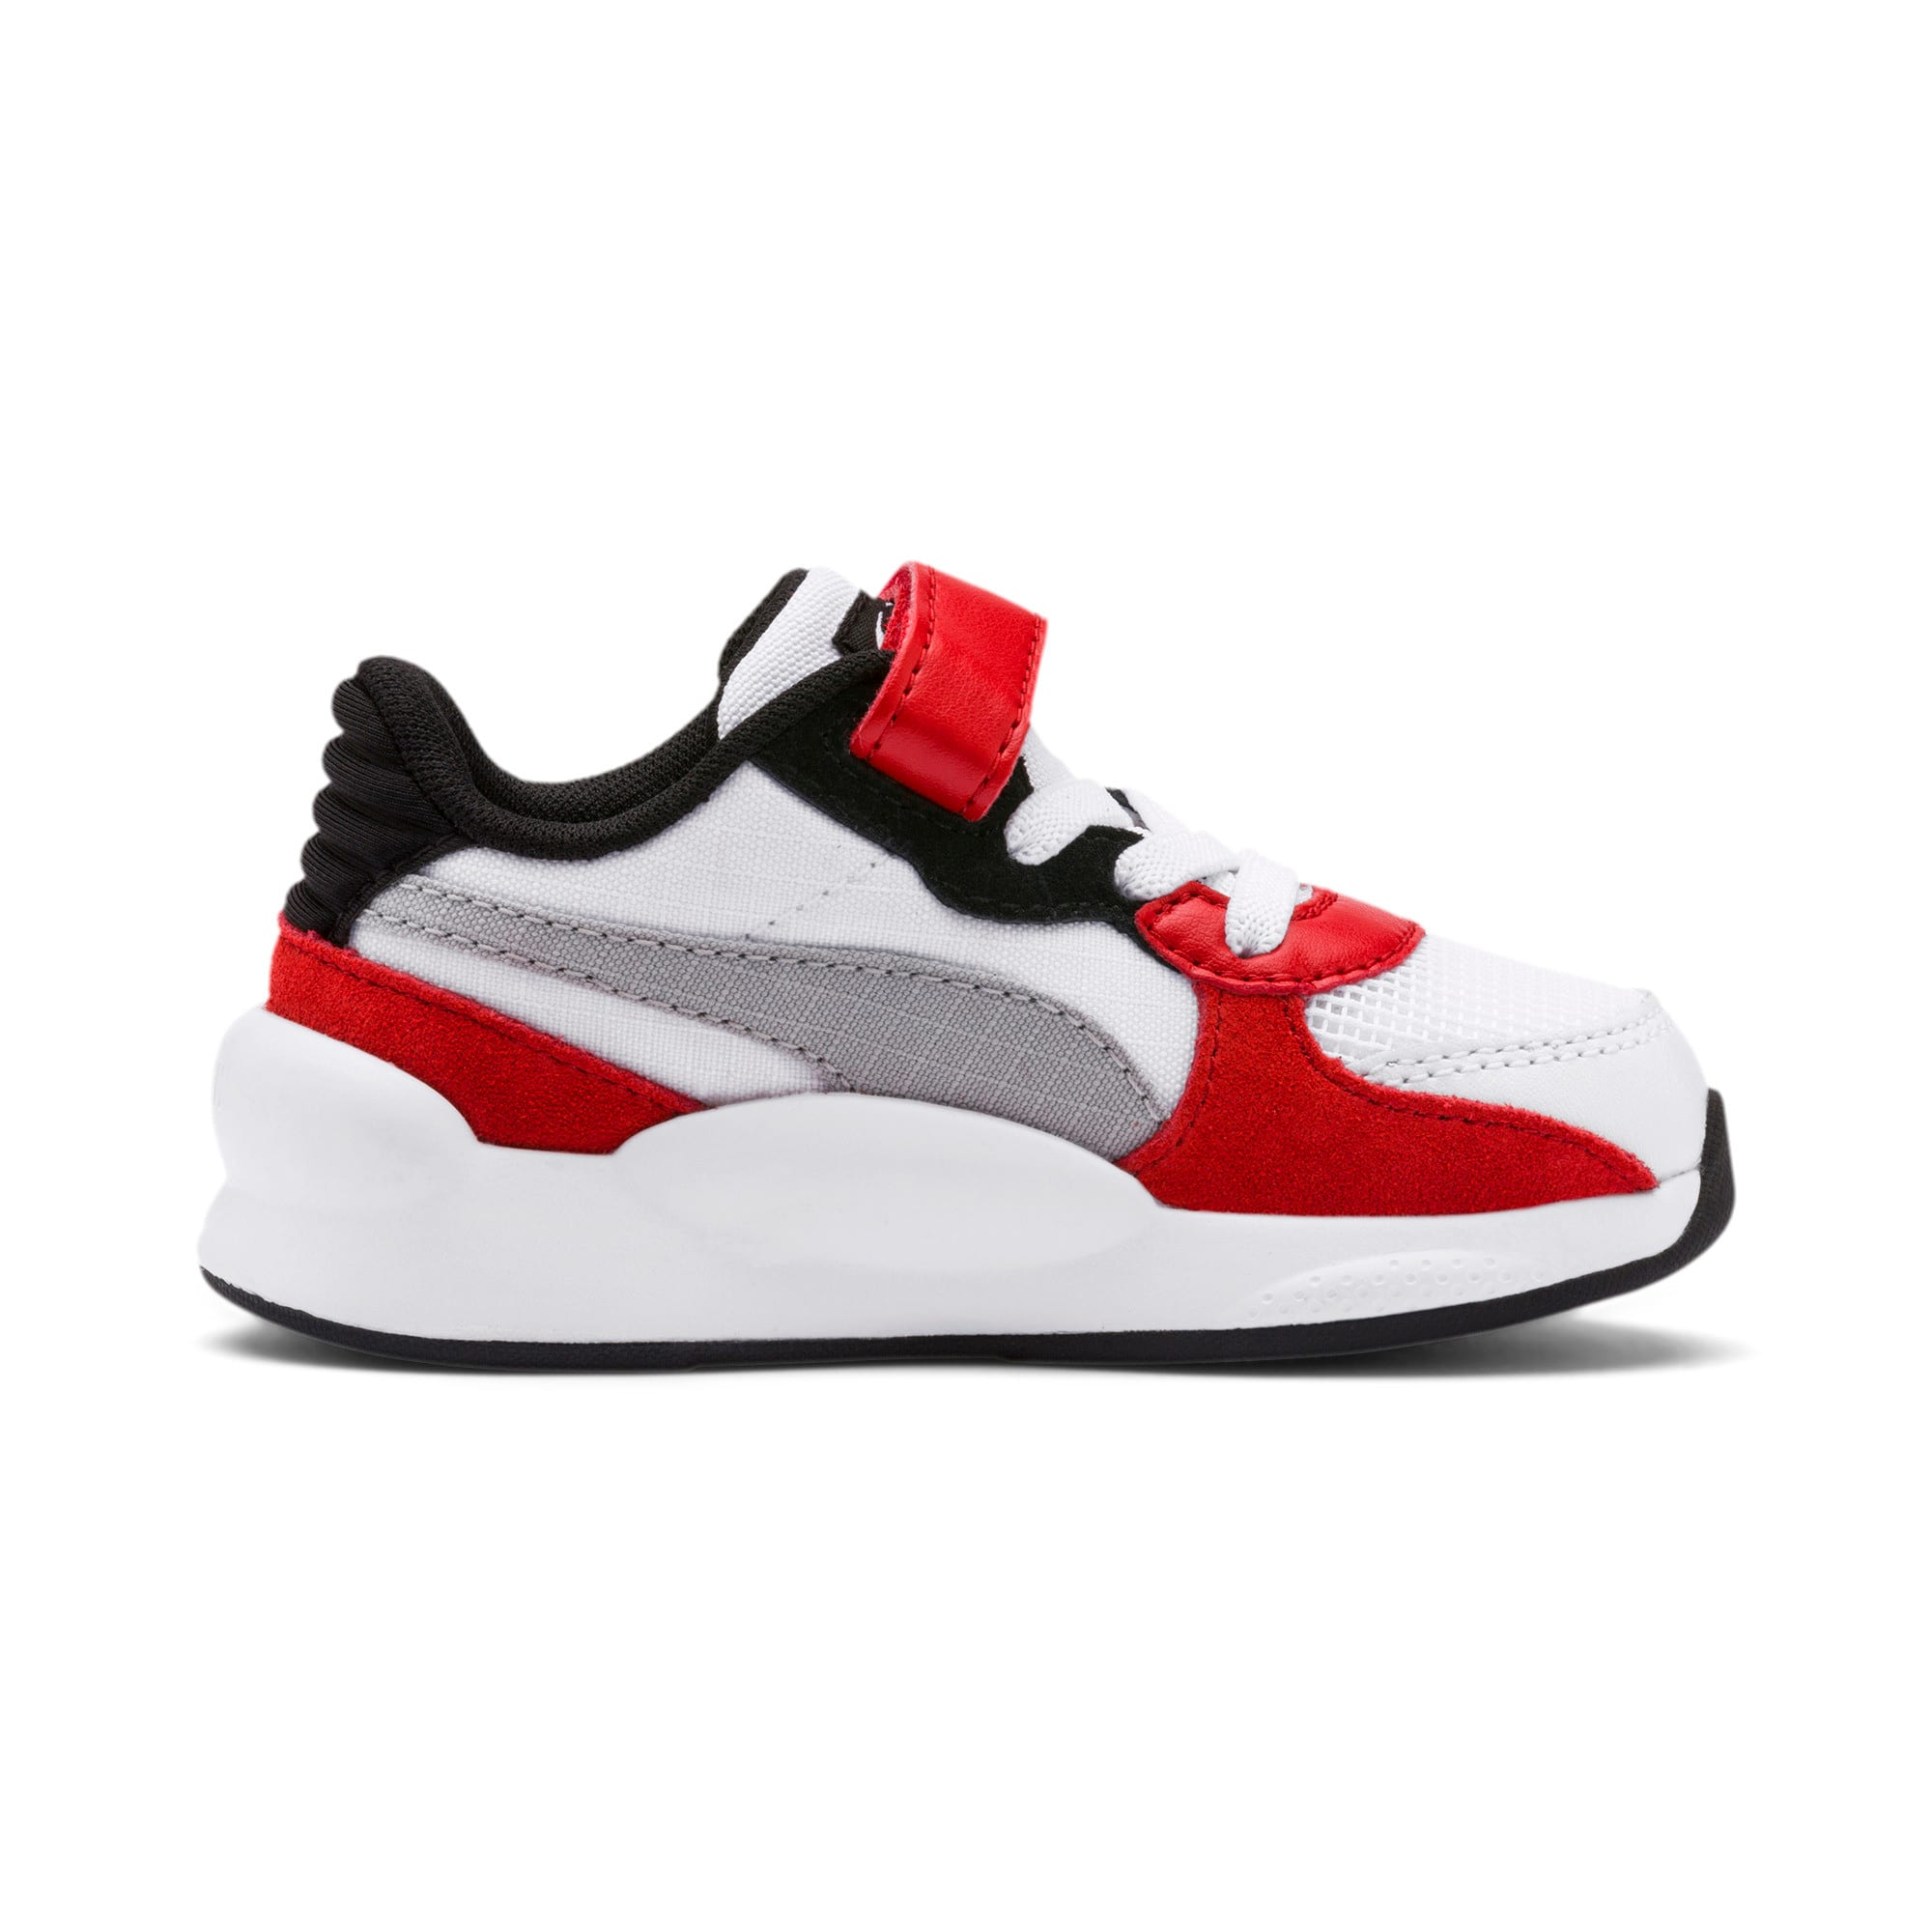 Thumbnail 5 of RS 9.8 Space AC Toddler Shoes, Puma White-High Risk Red, medium